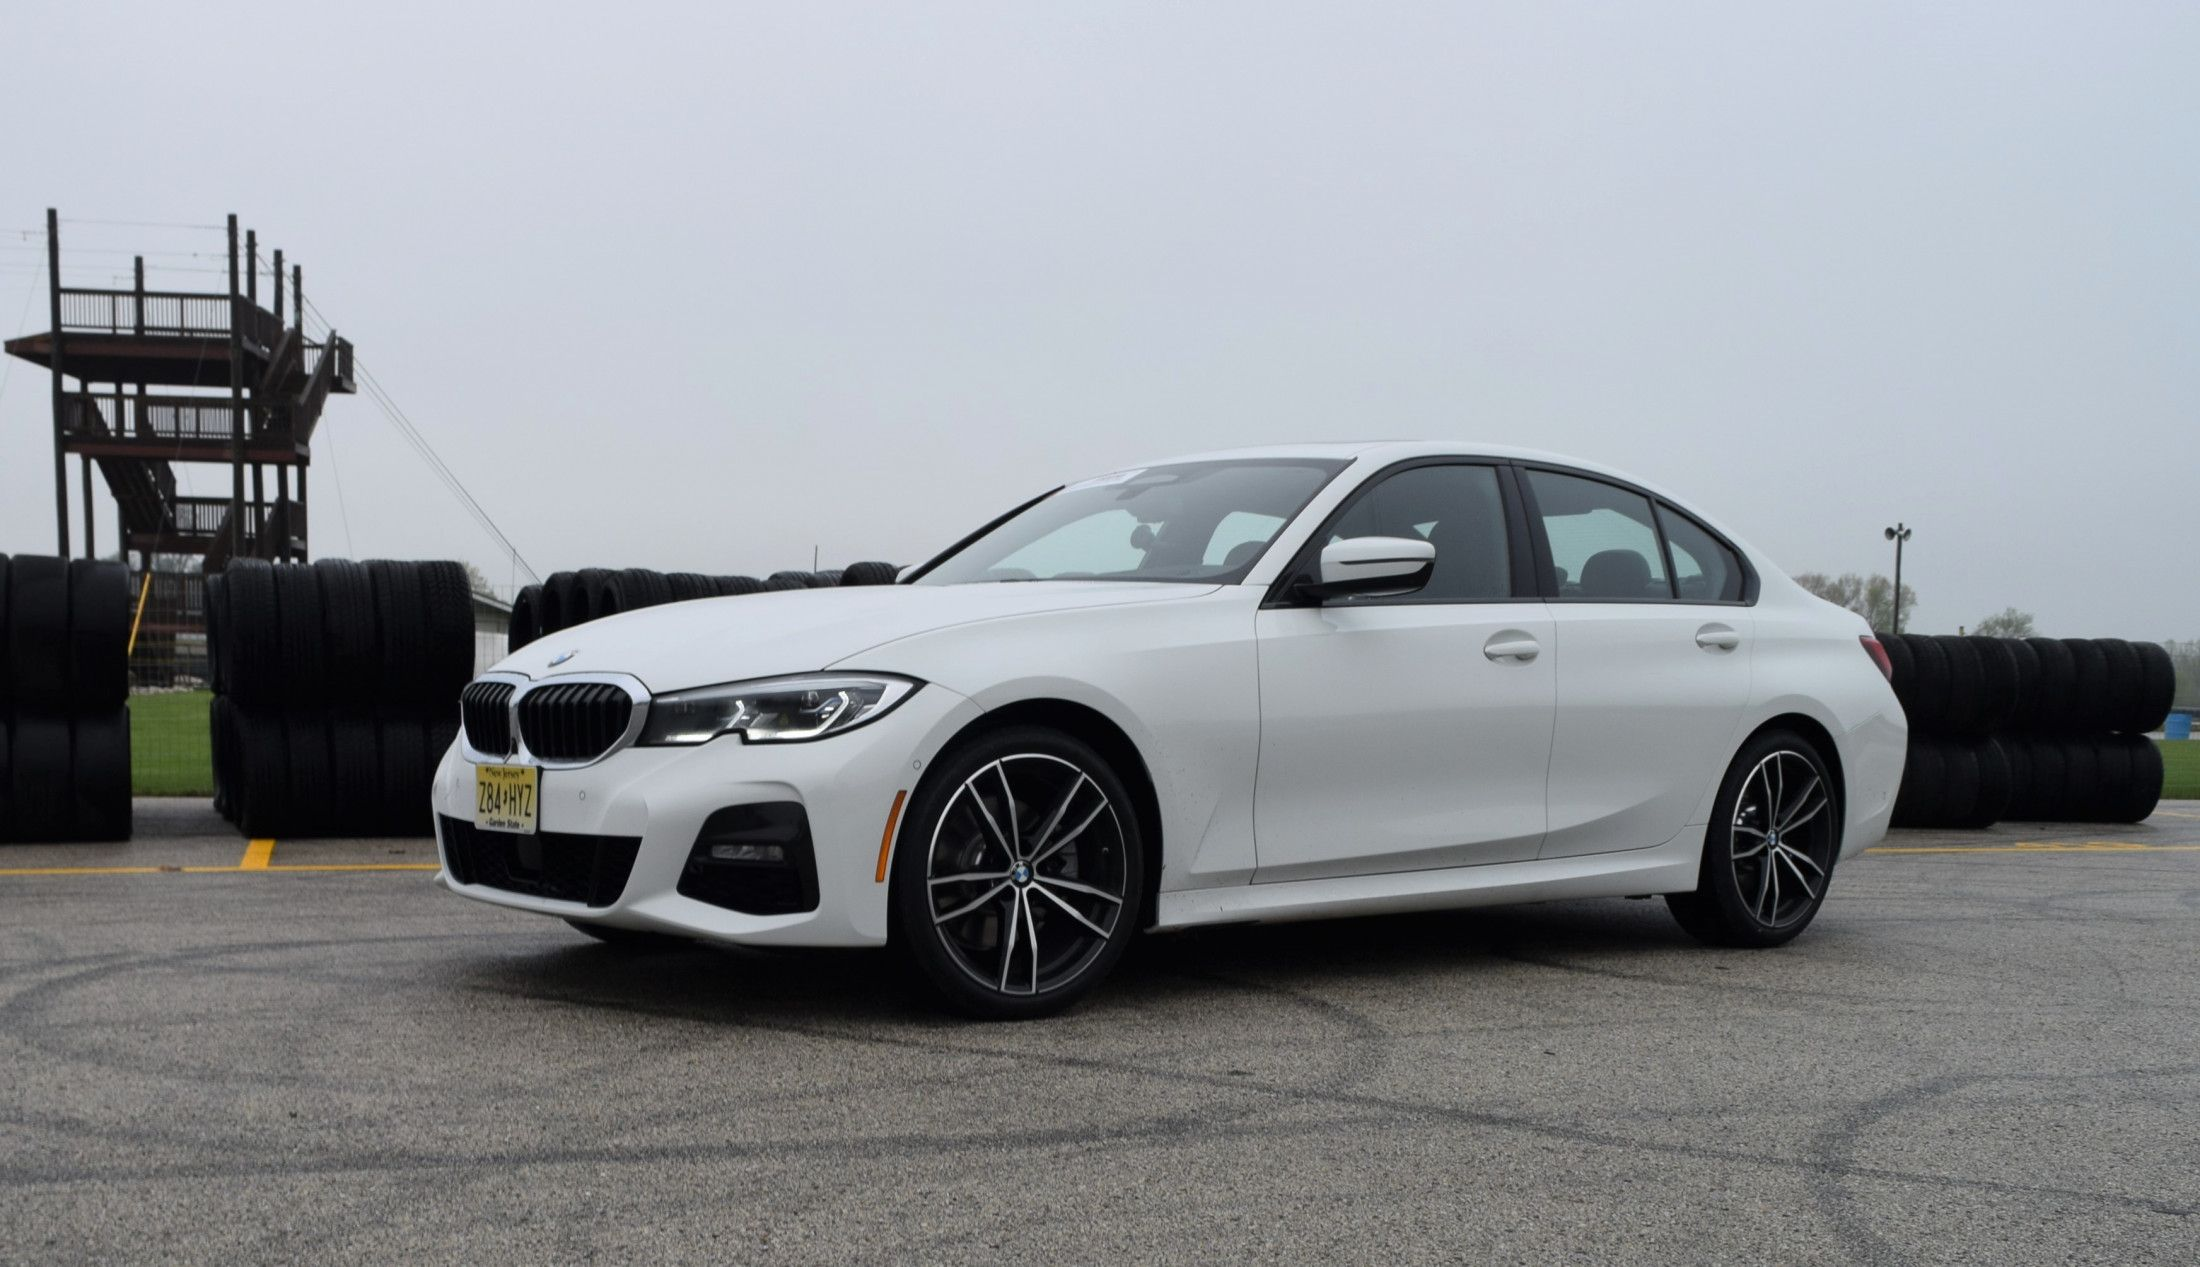 2020 Bmw 330i M Sport Xdrive First Drive Review Video Photo